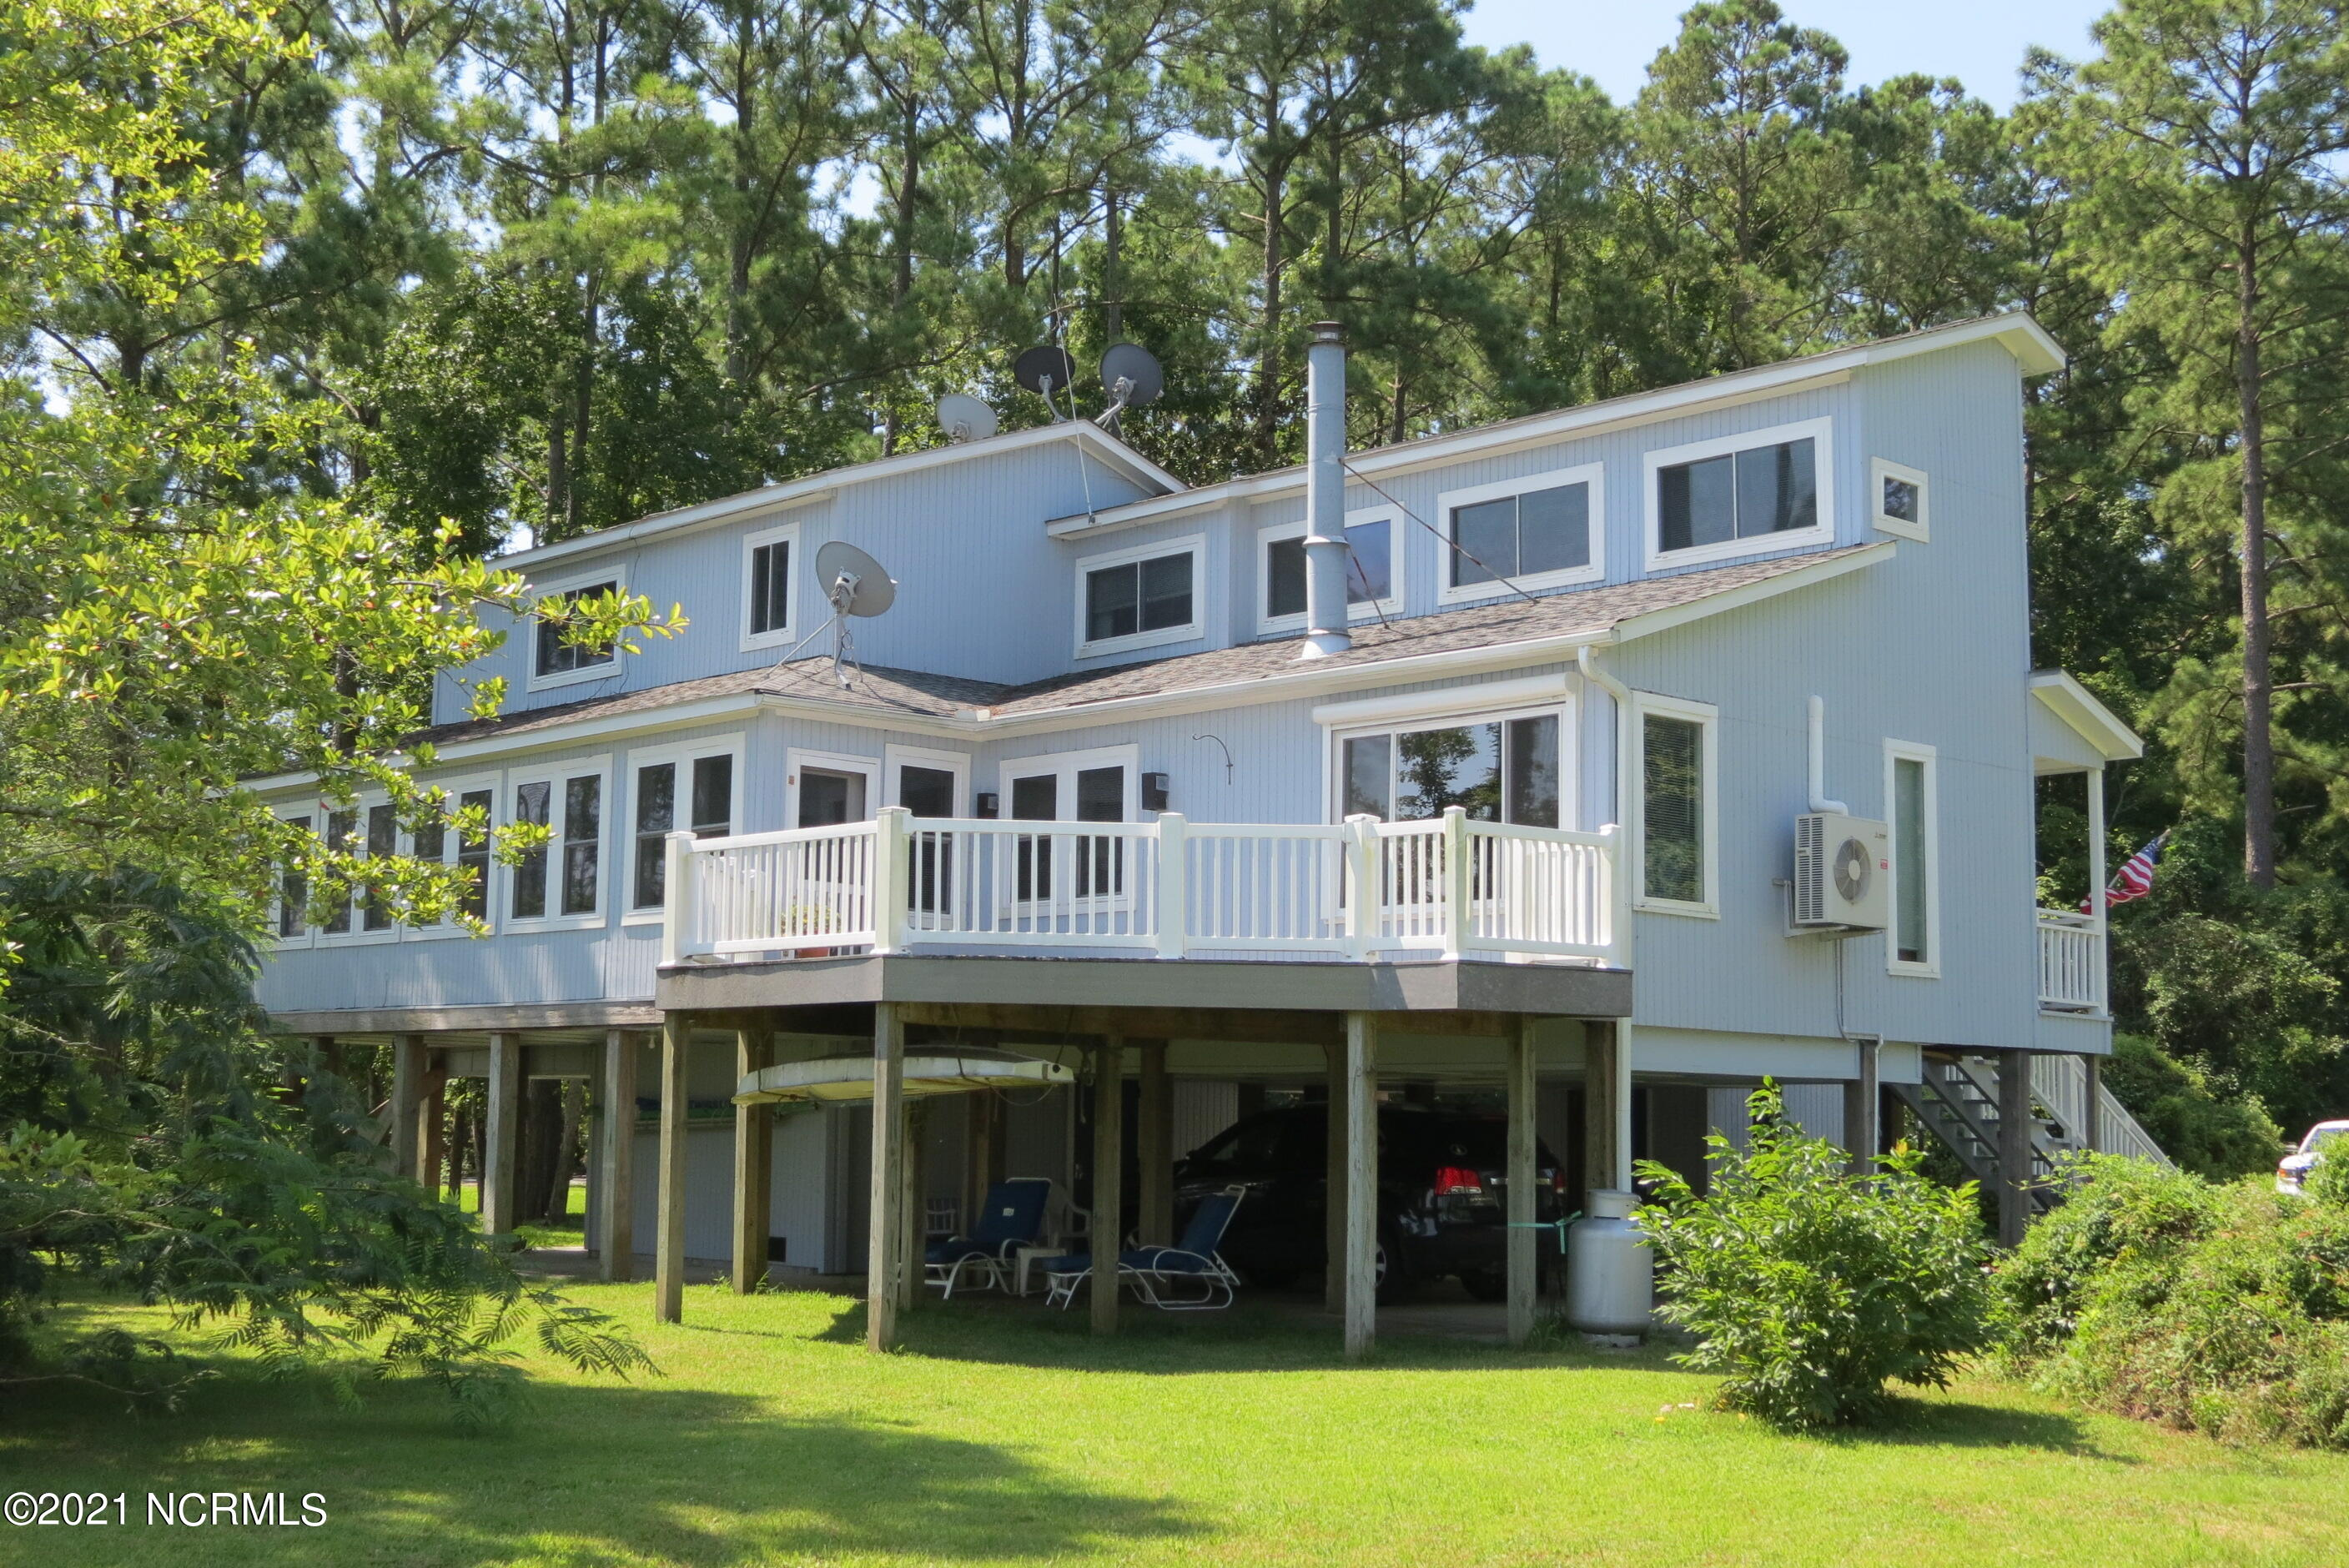 6107 Mainsail Point Road, Oriental, North Carolina 28571, 2 Bedrooms Bedrooms, 8 Rooms Rooms,3 BathroomsBathrooms,Single family residence,For sale,Mainsail Point,100287458